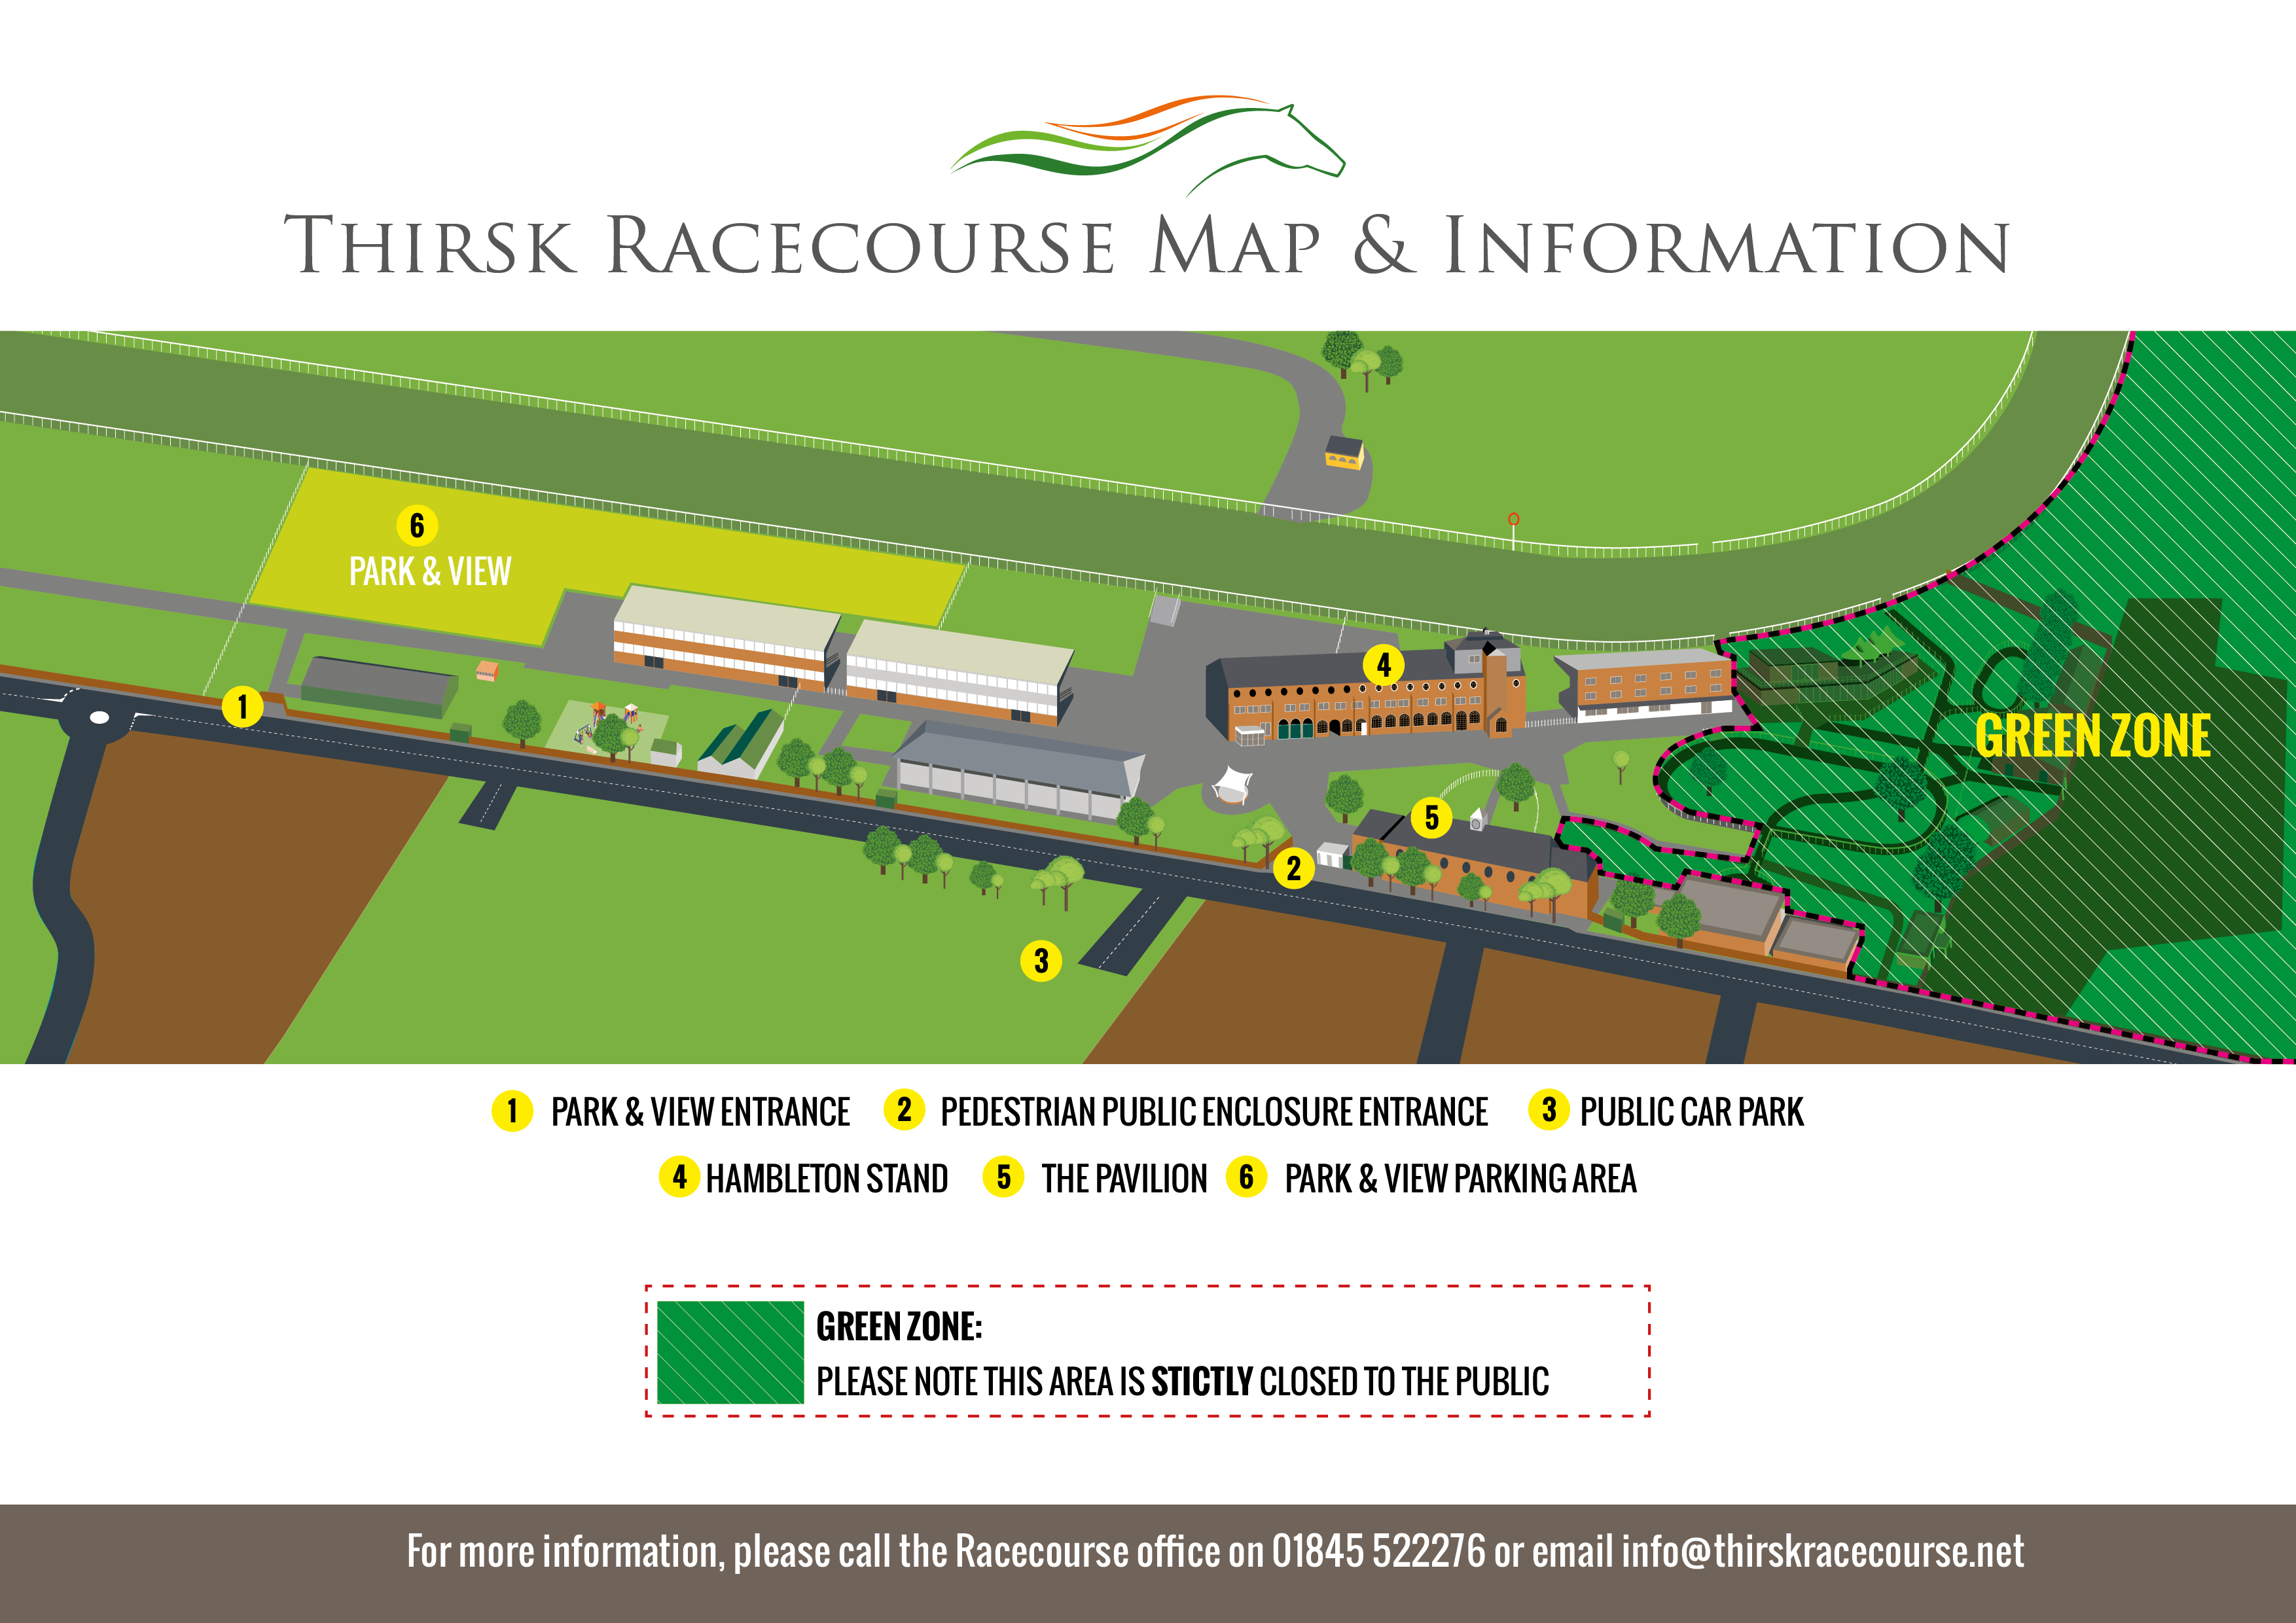 Thirsk Racecourse Map 2021